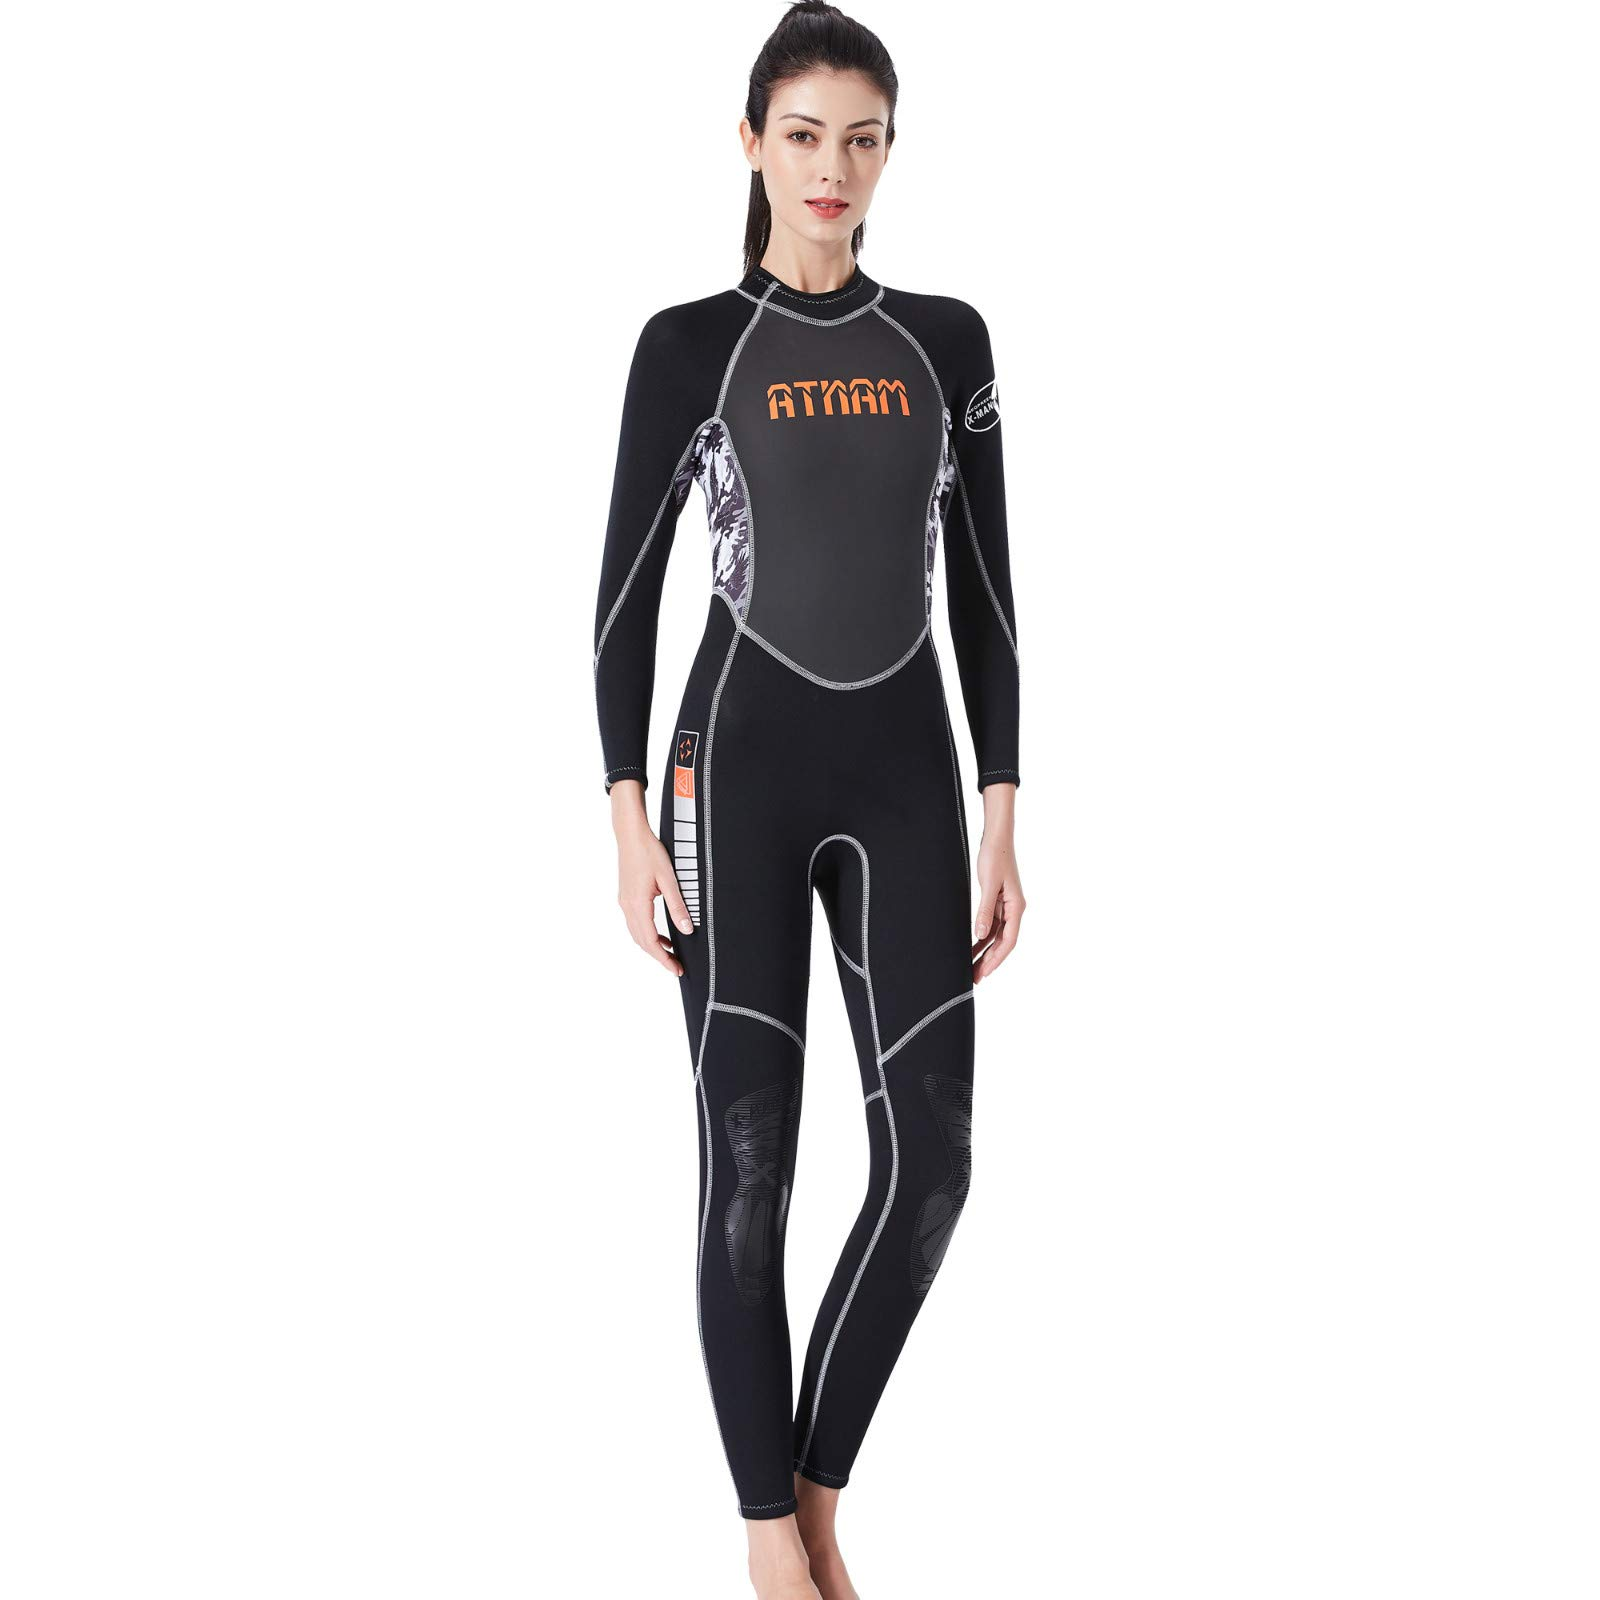 Tomppy Full Body Wetsuits for Women Keep Warm Sunscreen Printed Swimming Snorkeling Surfing Scuba Diving Suit Swimsuits Black by Tomppy